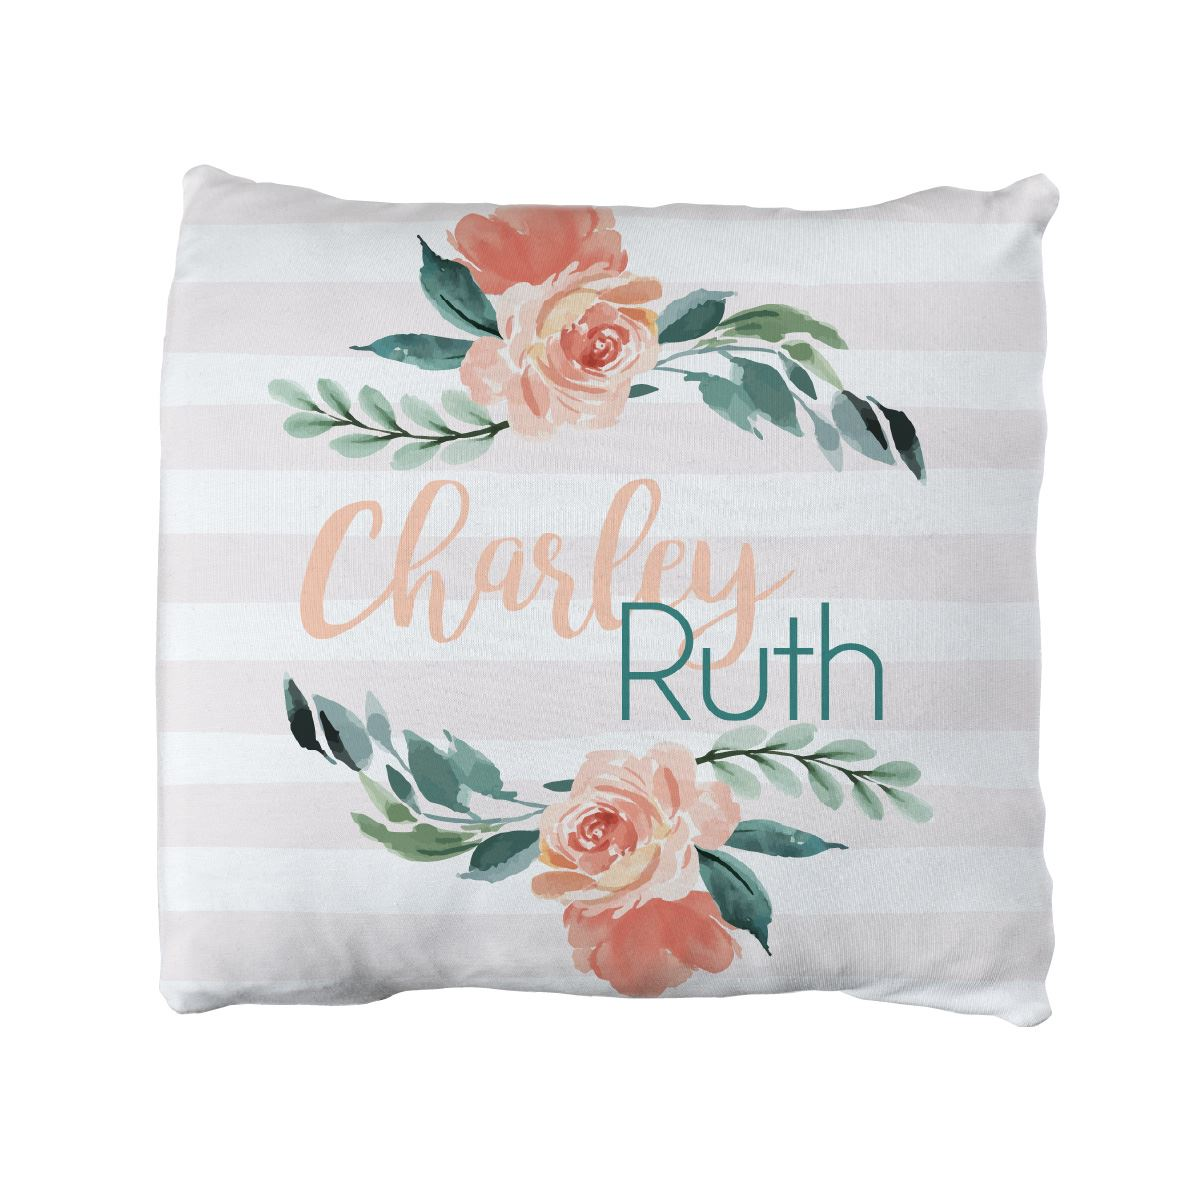 Charley Ruth | Big Kid Throw Pillow